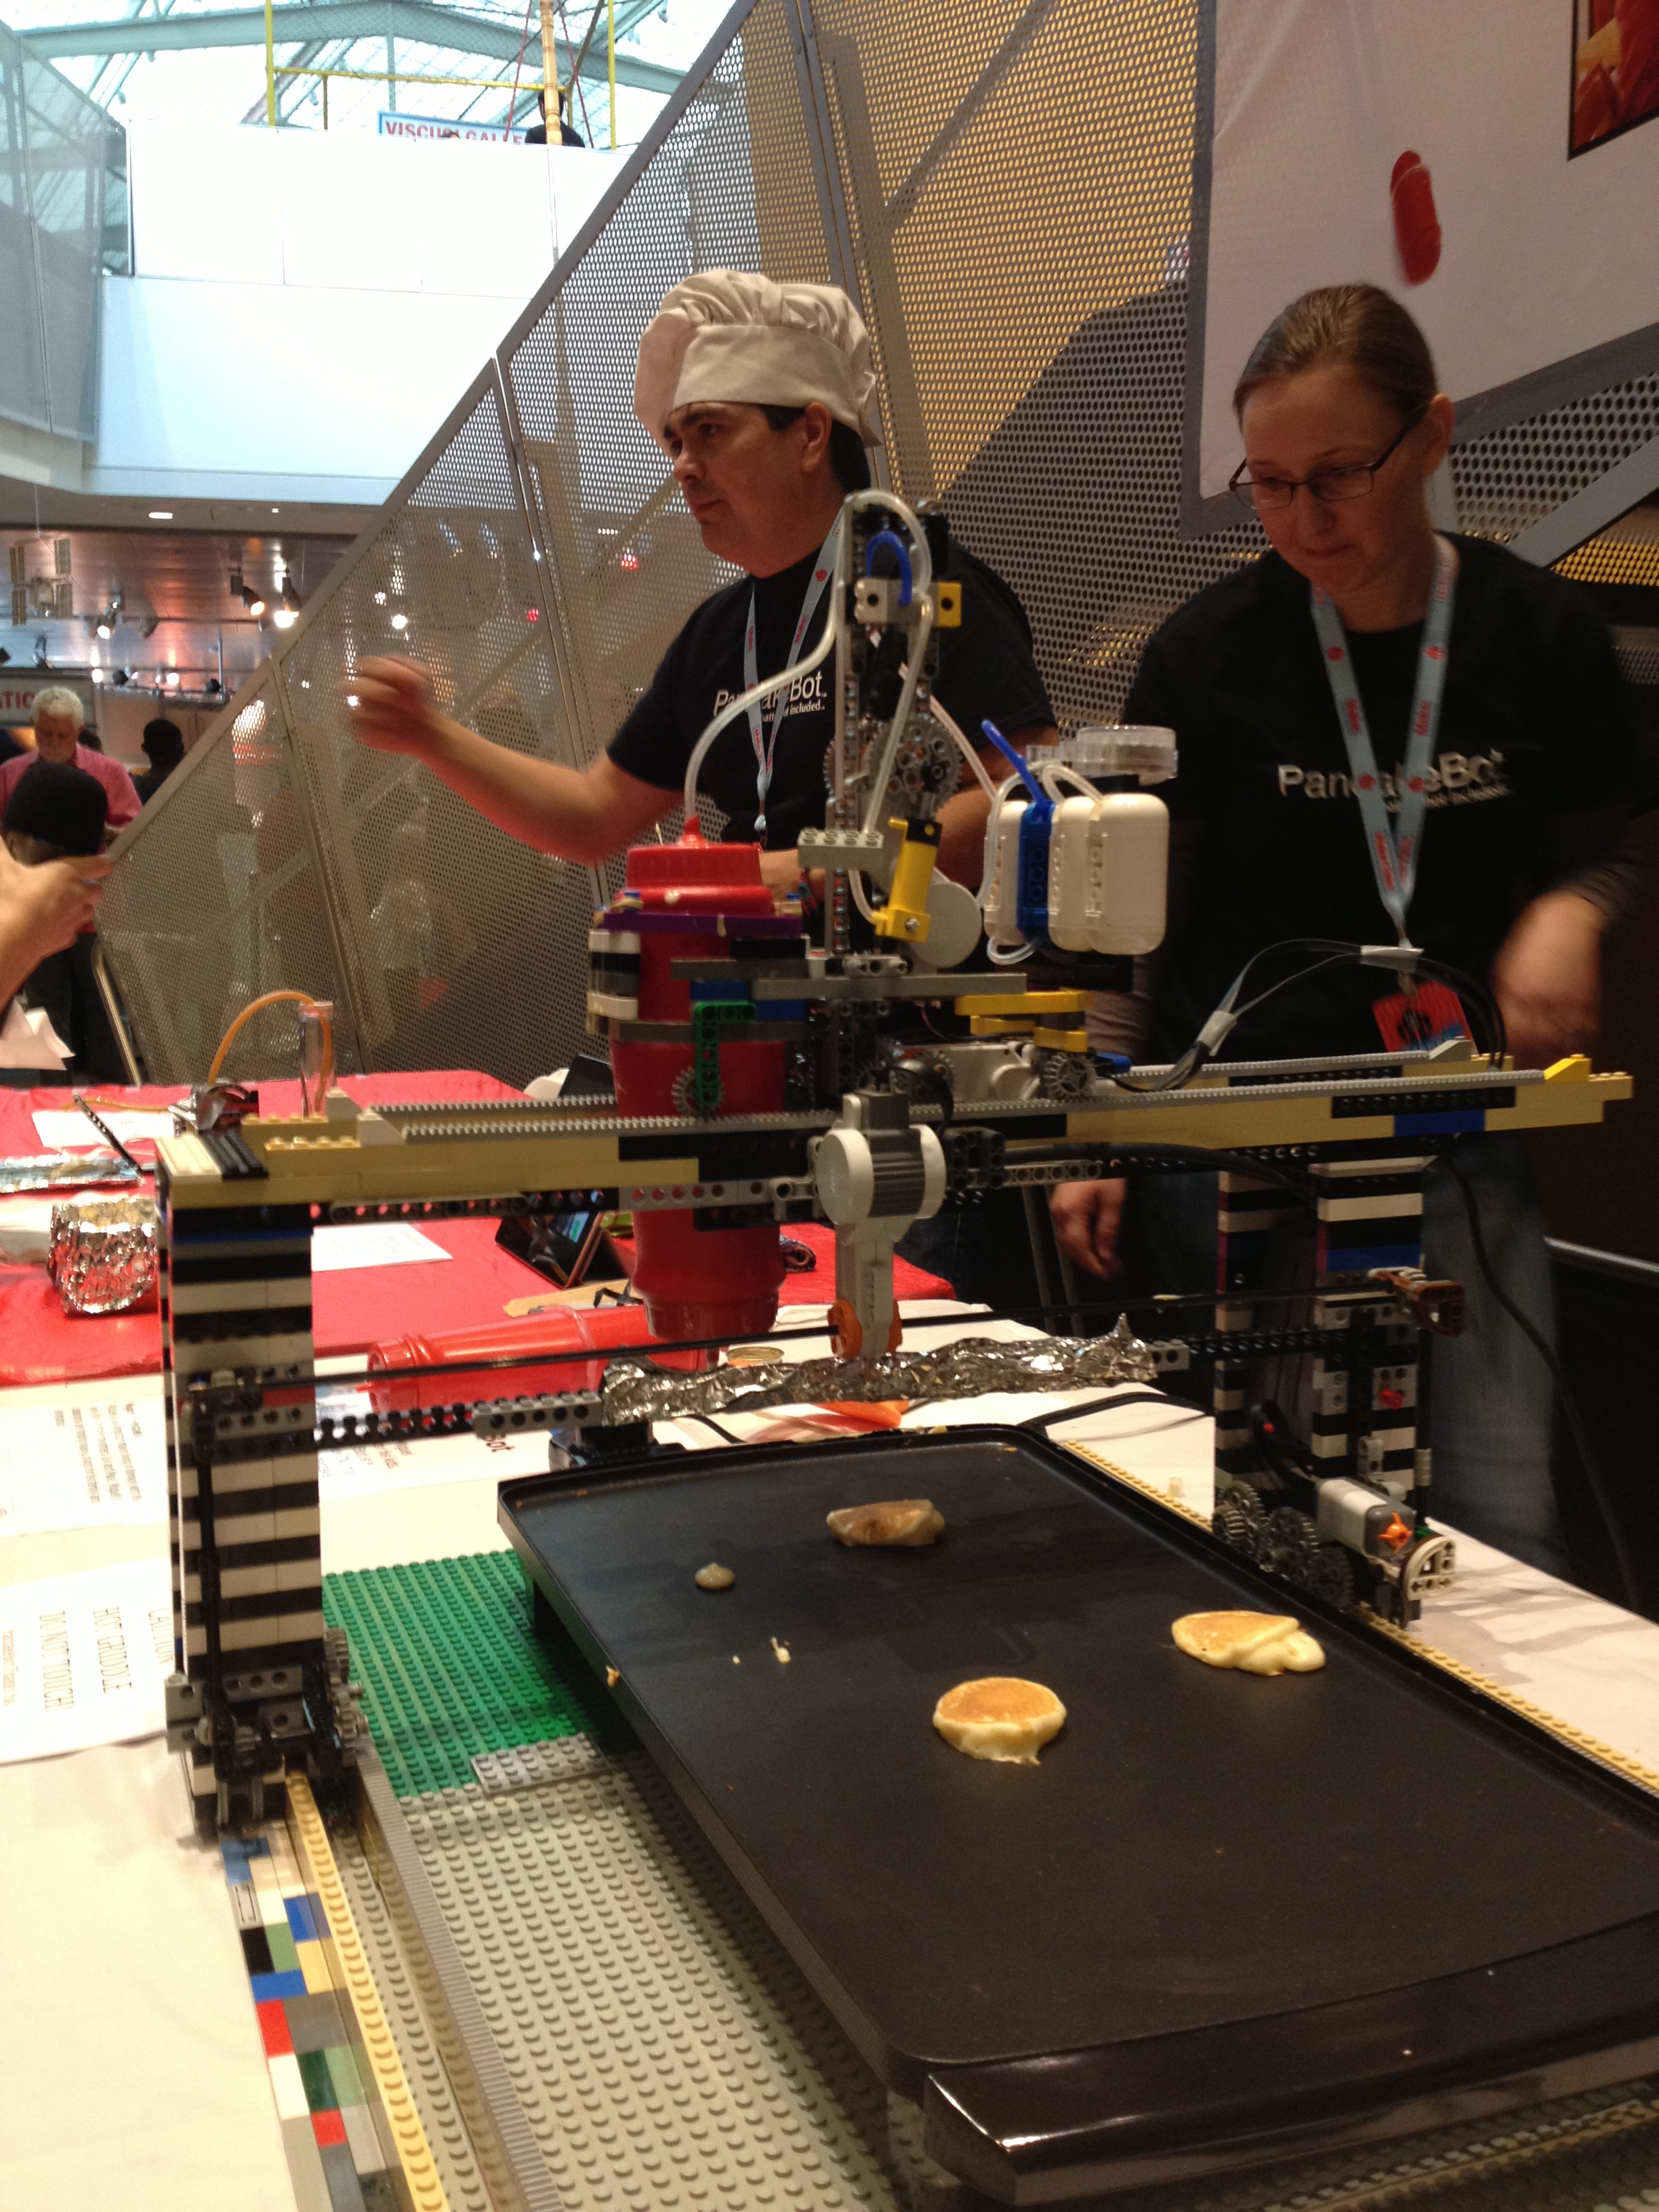 See the Lego Pancake Bot at Maker Faire